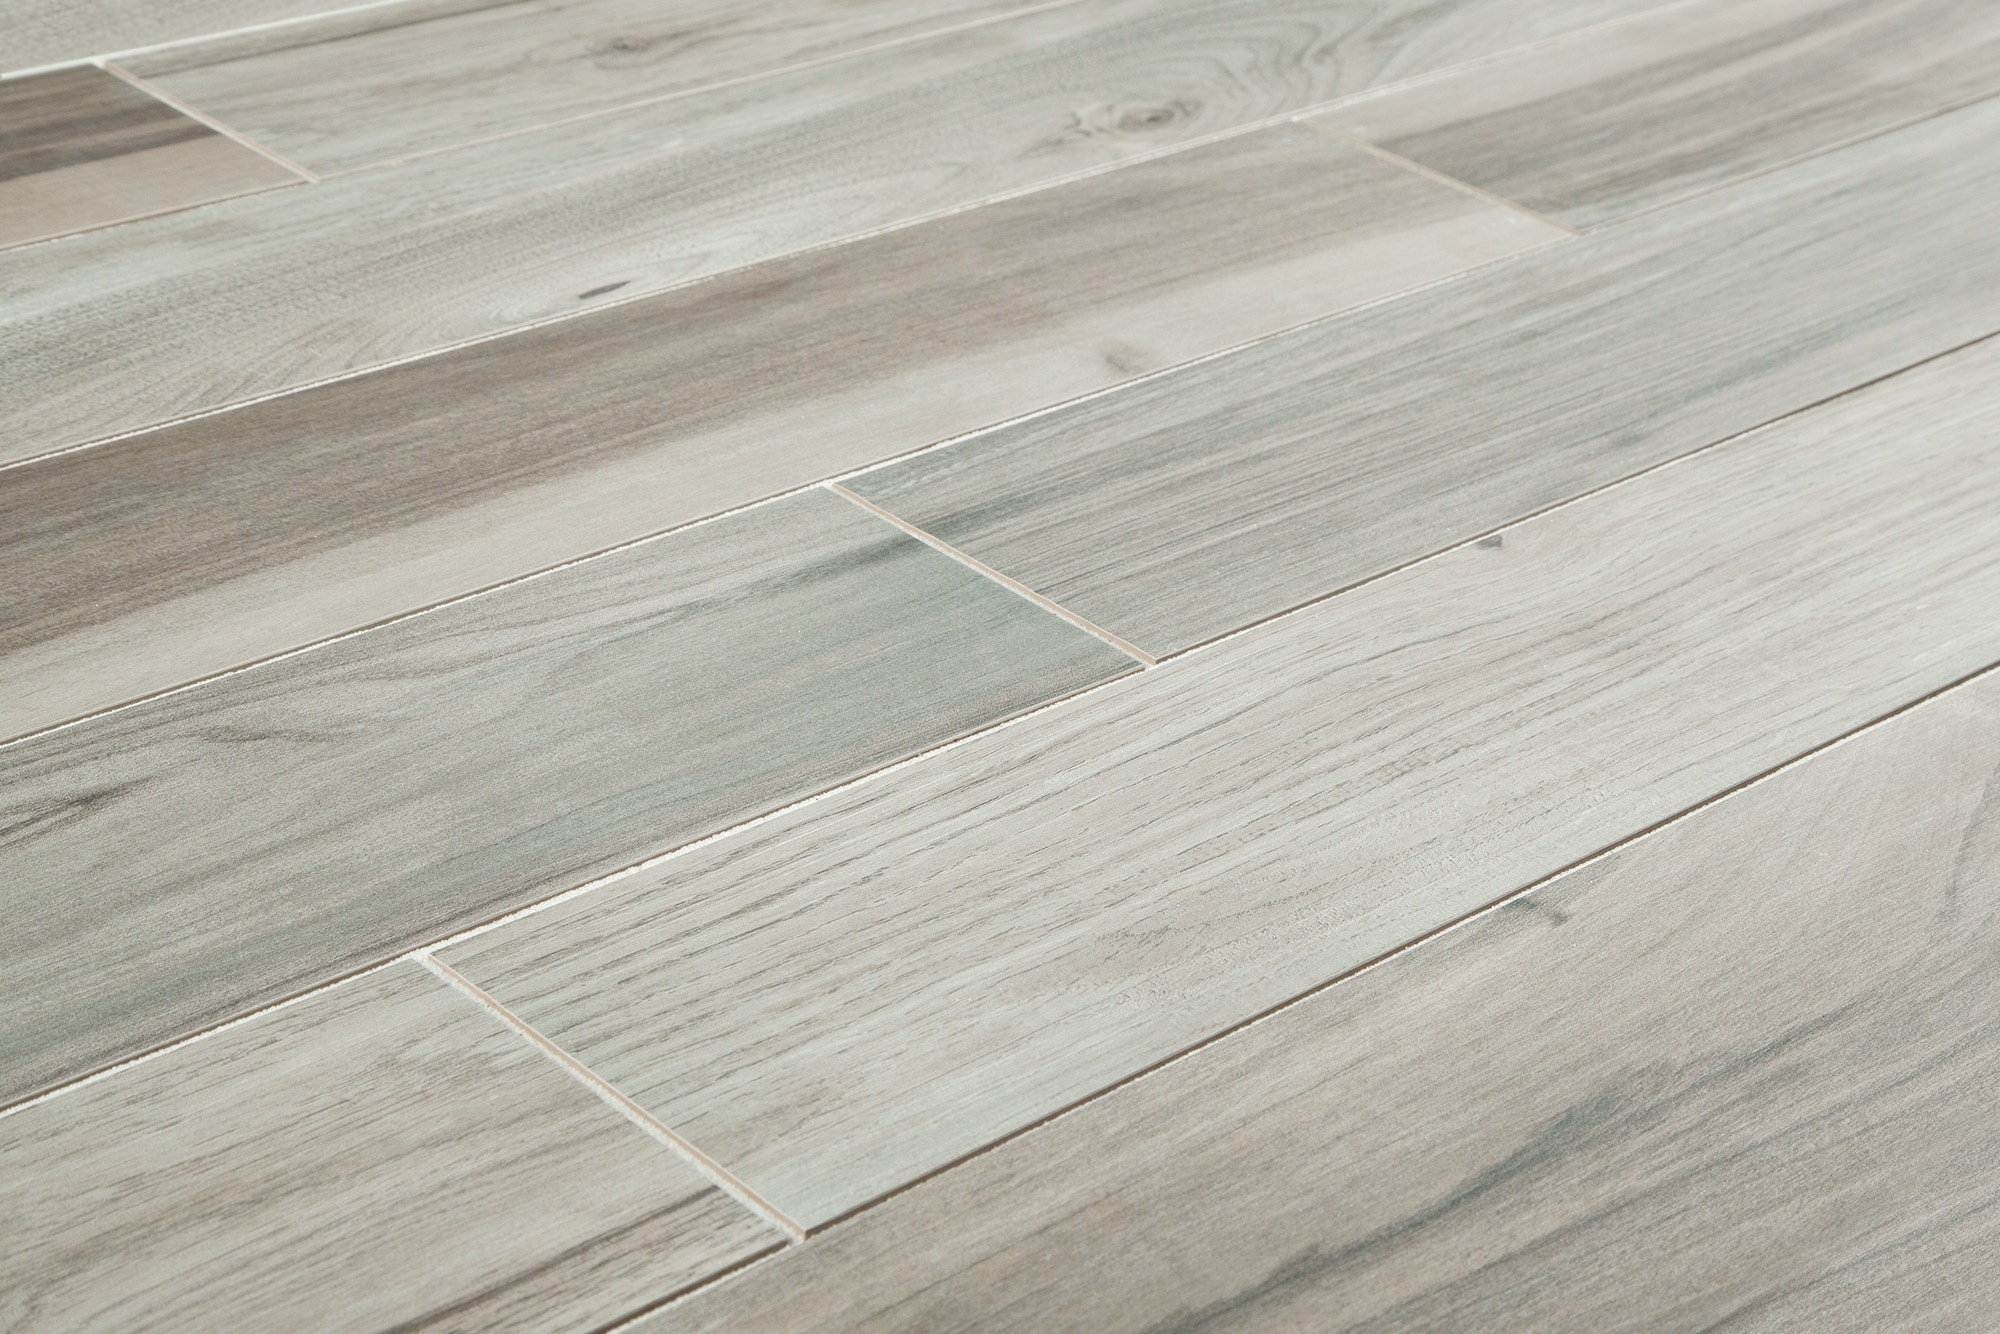 Porcelain tile wood grain flooring roselawnlutheran for Hardwood flooring sale